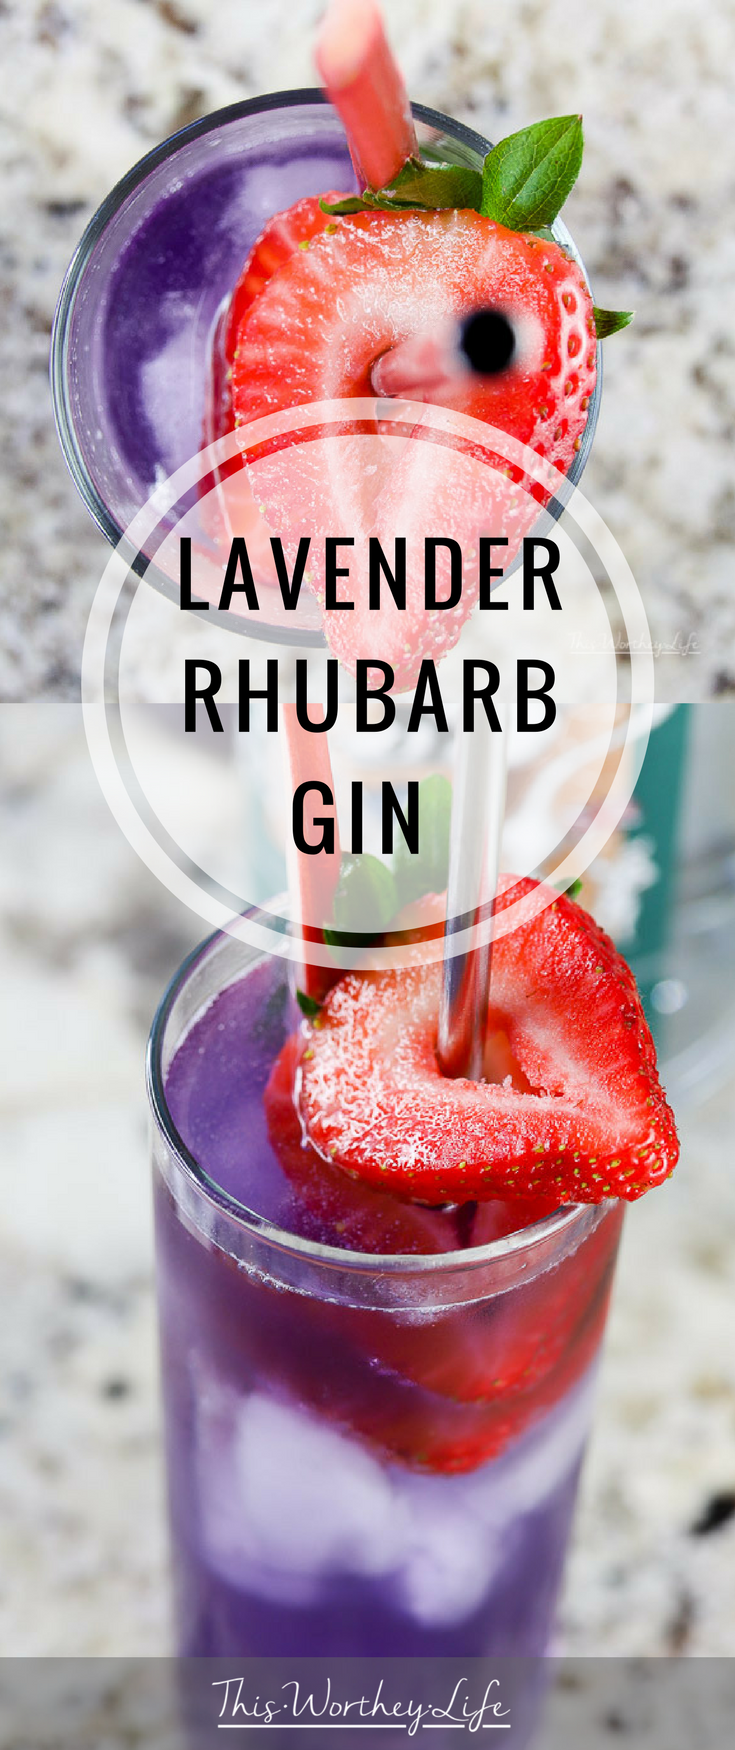 This purple cocktail idea is great to make this summer. Filled with fresh strawberries, rhubarb, lavender syrup, and gin, this refreshing summer drink is pretty and delicious. Grab the ingredients and try our Lavender + Rhubarb Gin Drink!